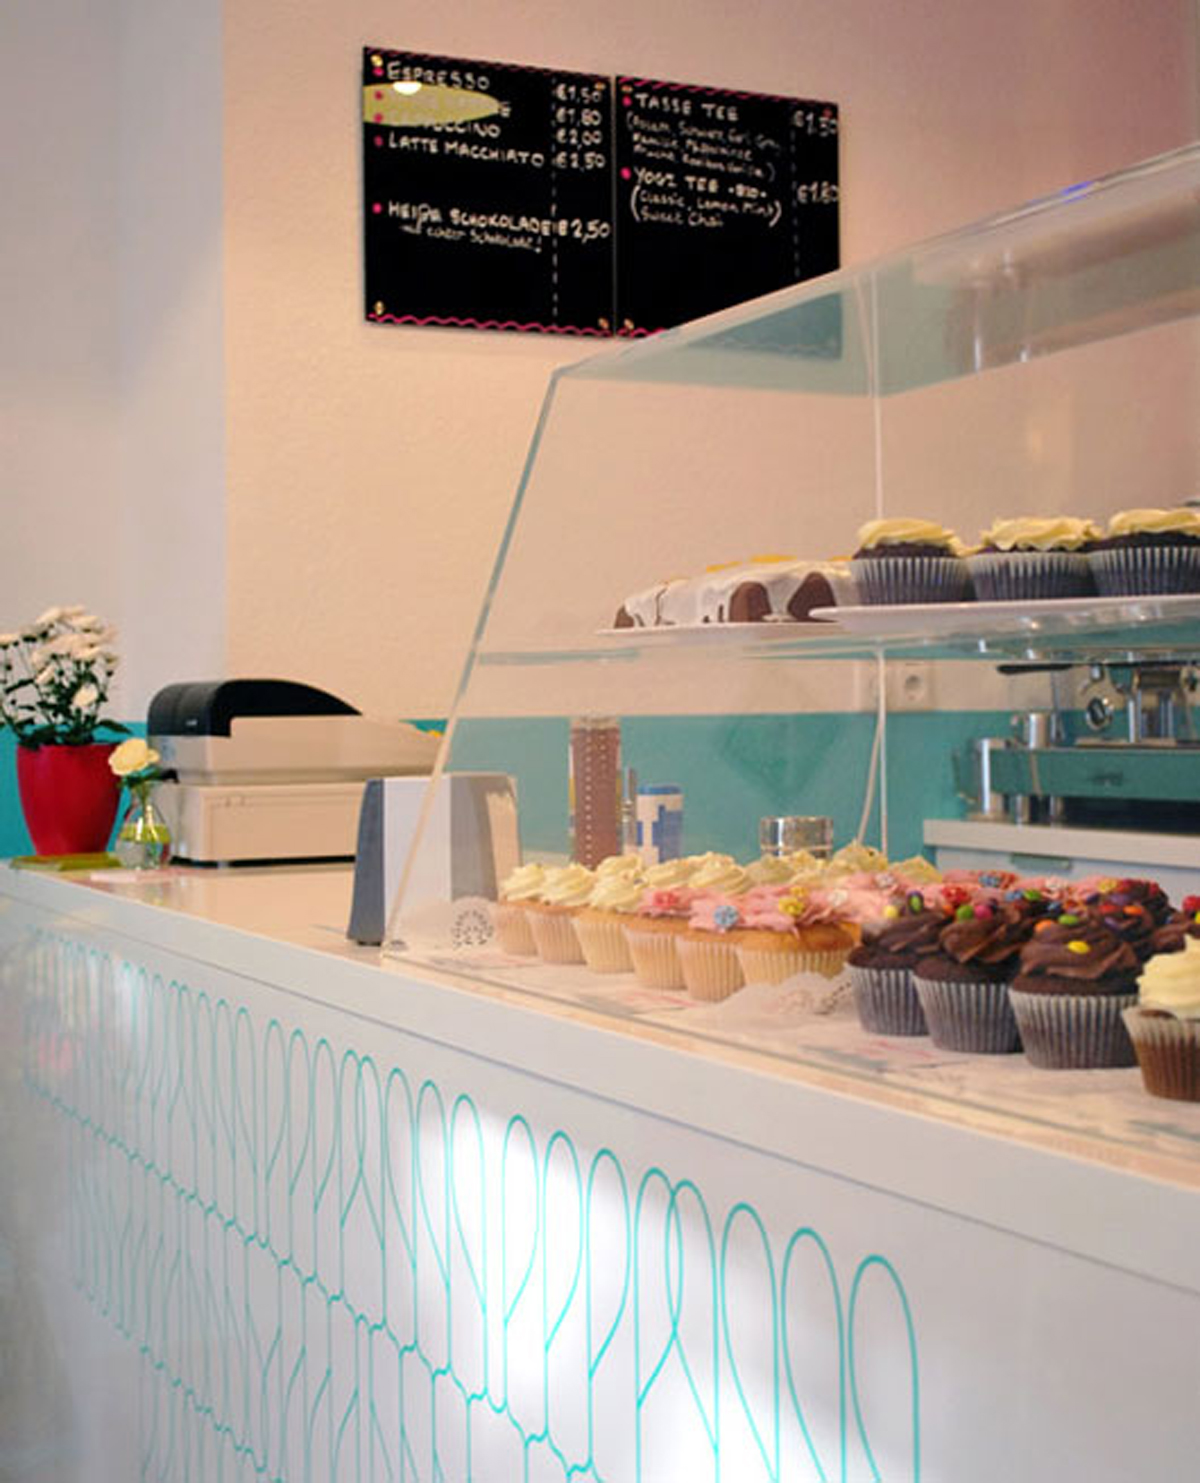 clean and clear cake shop ideas - Iroonie.com